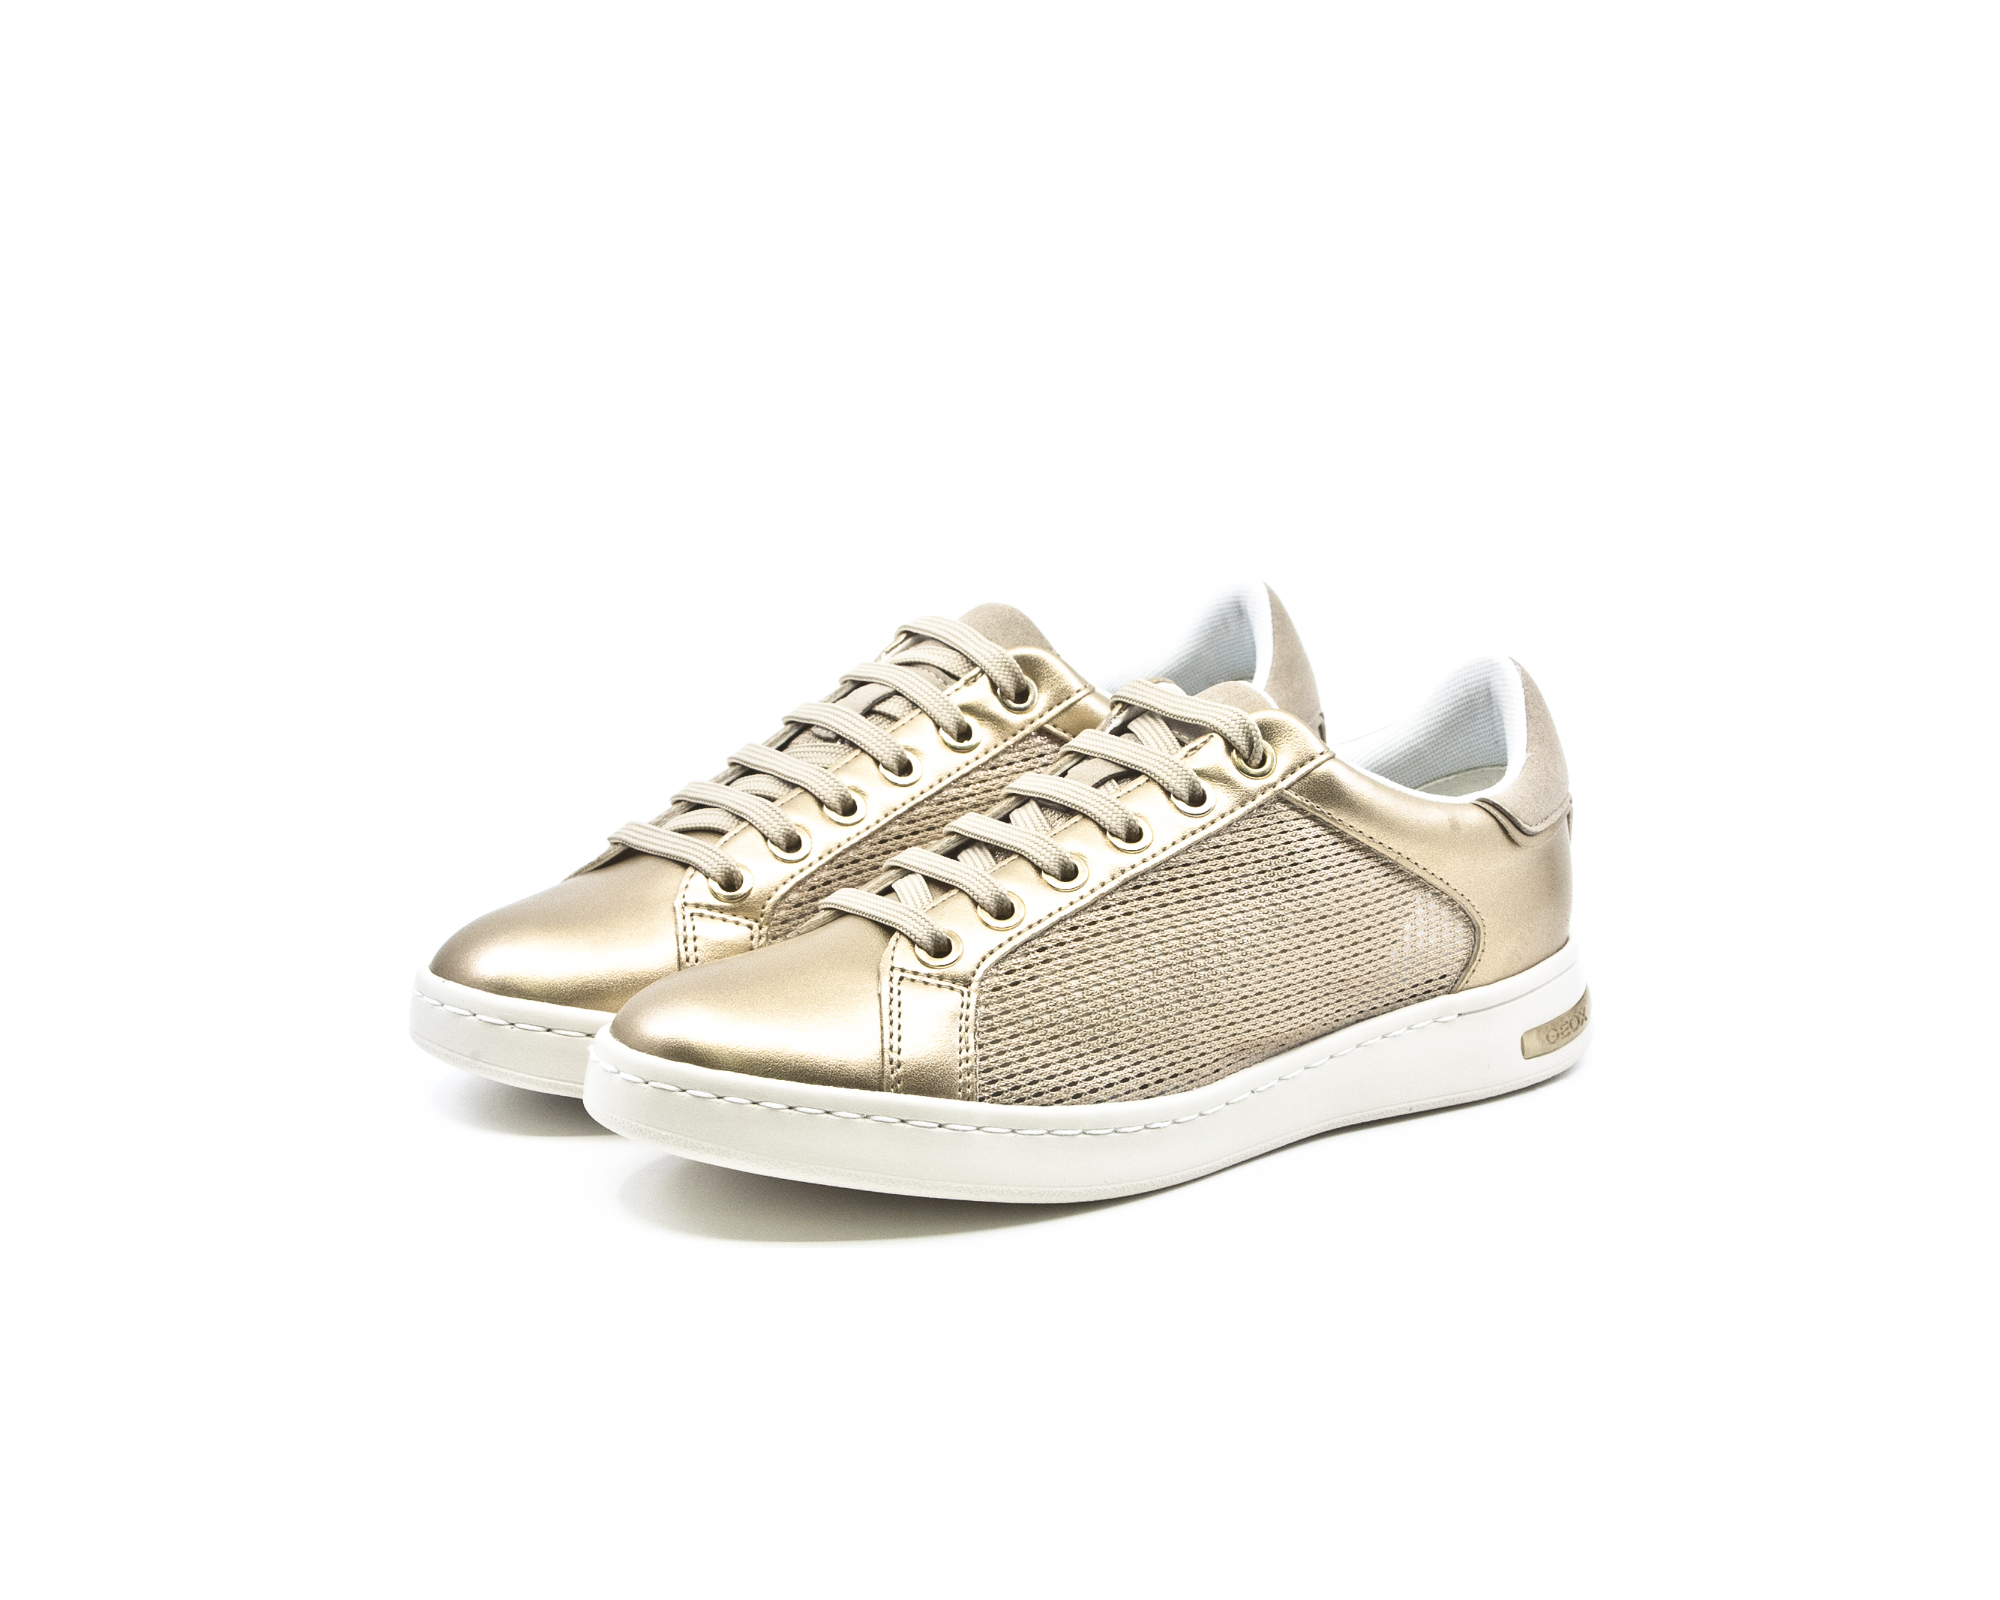 539d4bfbd6e Geox Jaysen Γυναικεία Ανατομικά Sneakers Champagne-Gold (D821BA 0LYNF  CB52X) - LifeShoes.gr